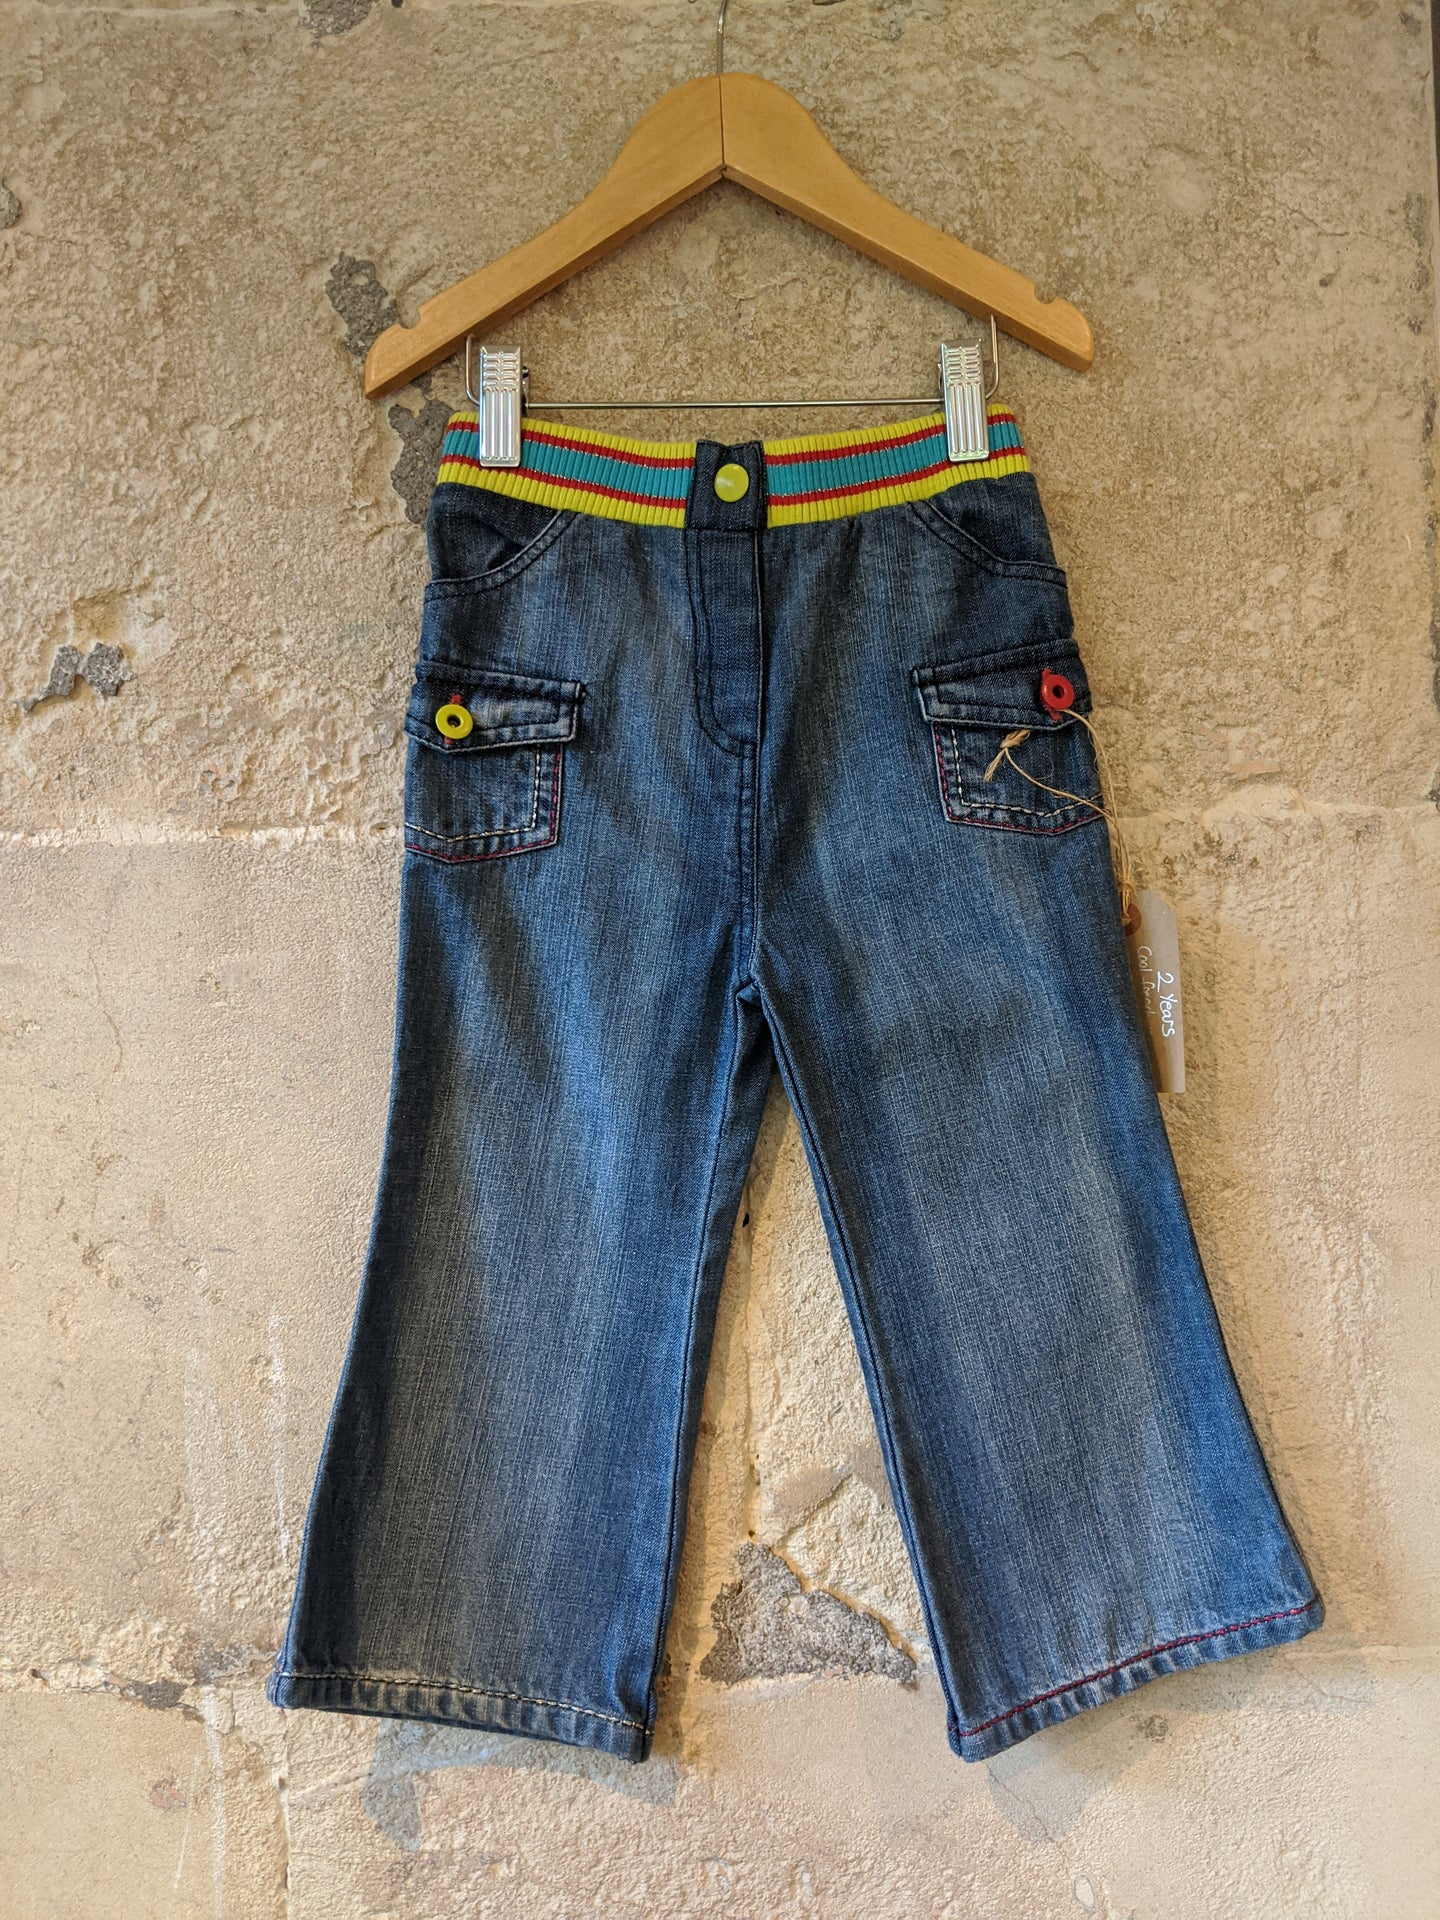 Sparkle and Stripes - Fab French Jeans - 2 Years